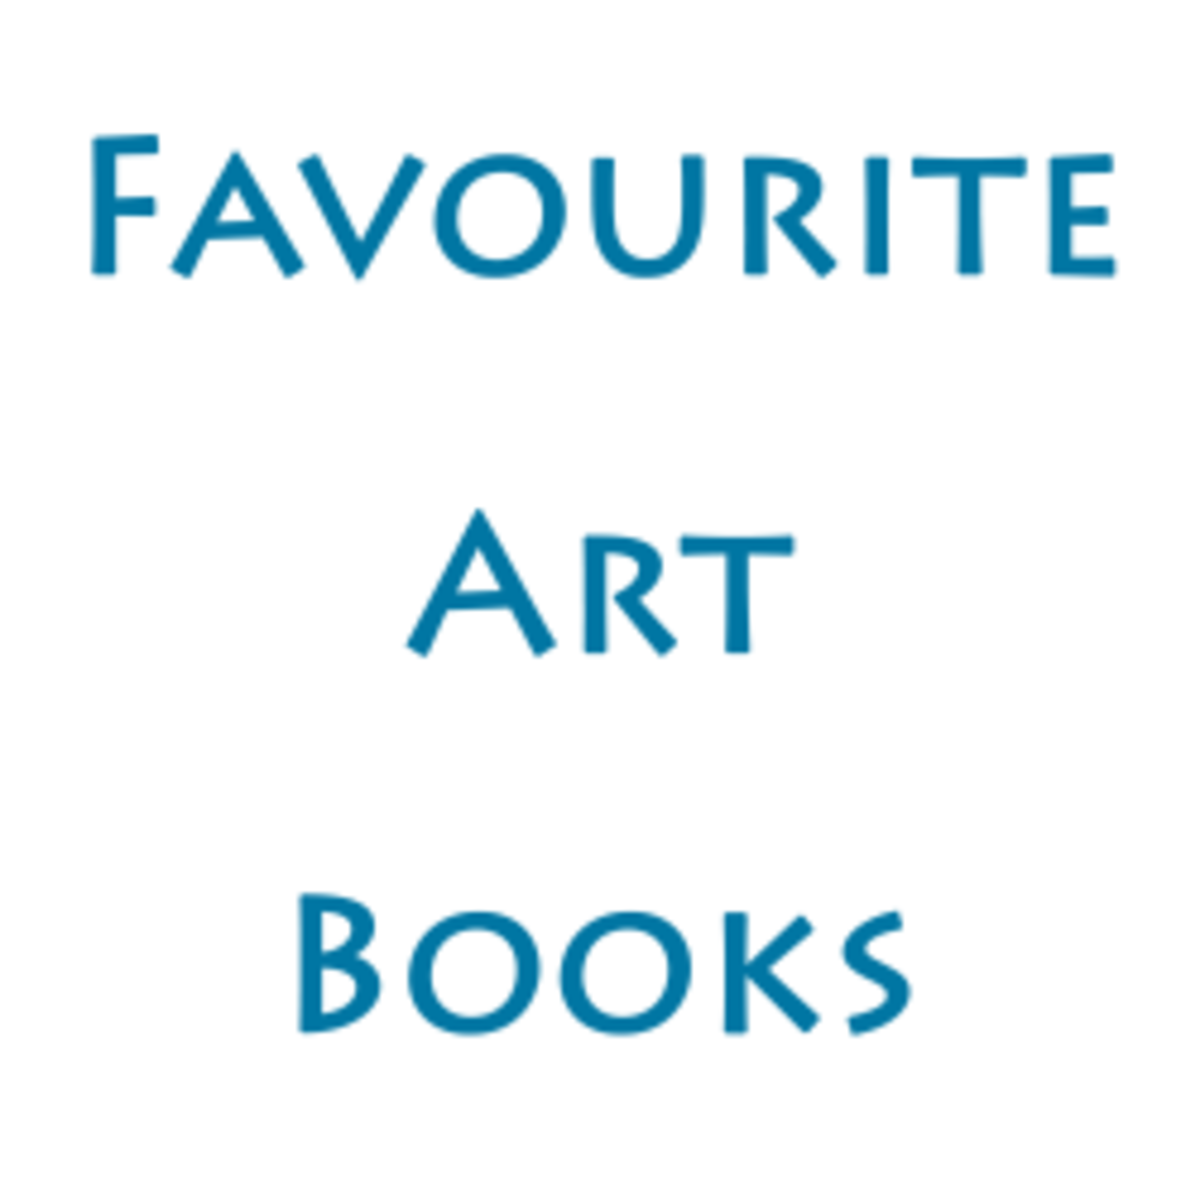 Artists' Favourite Art Books